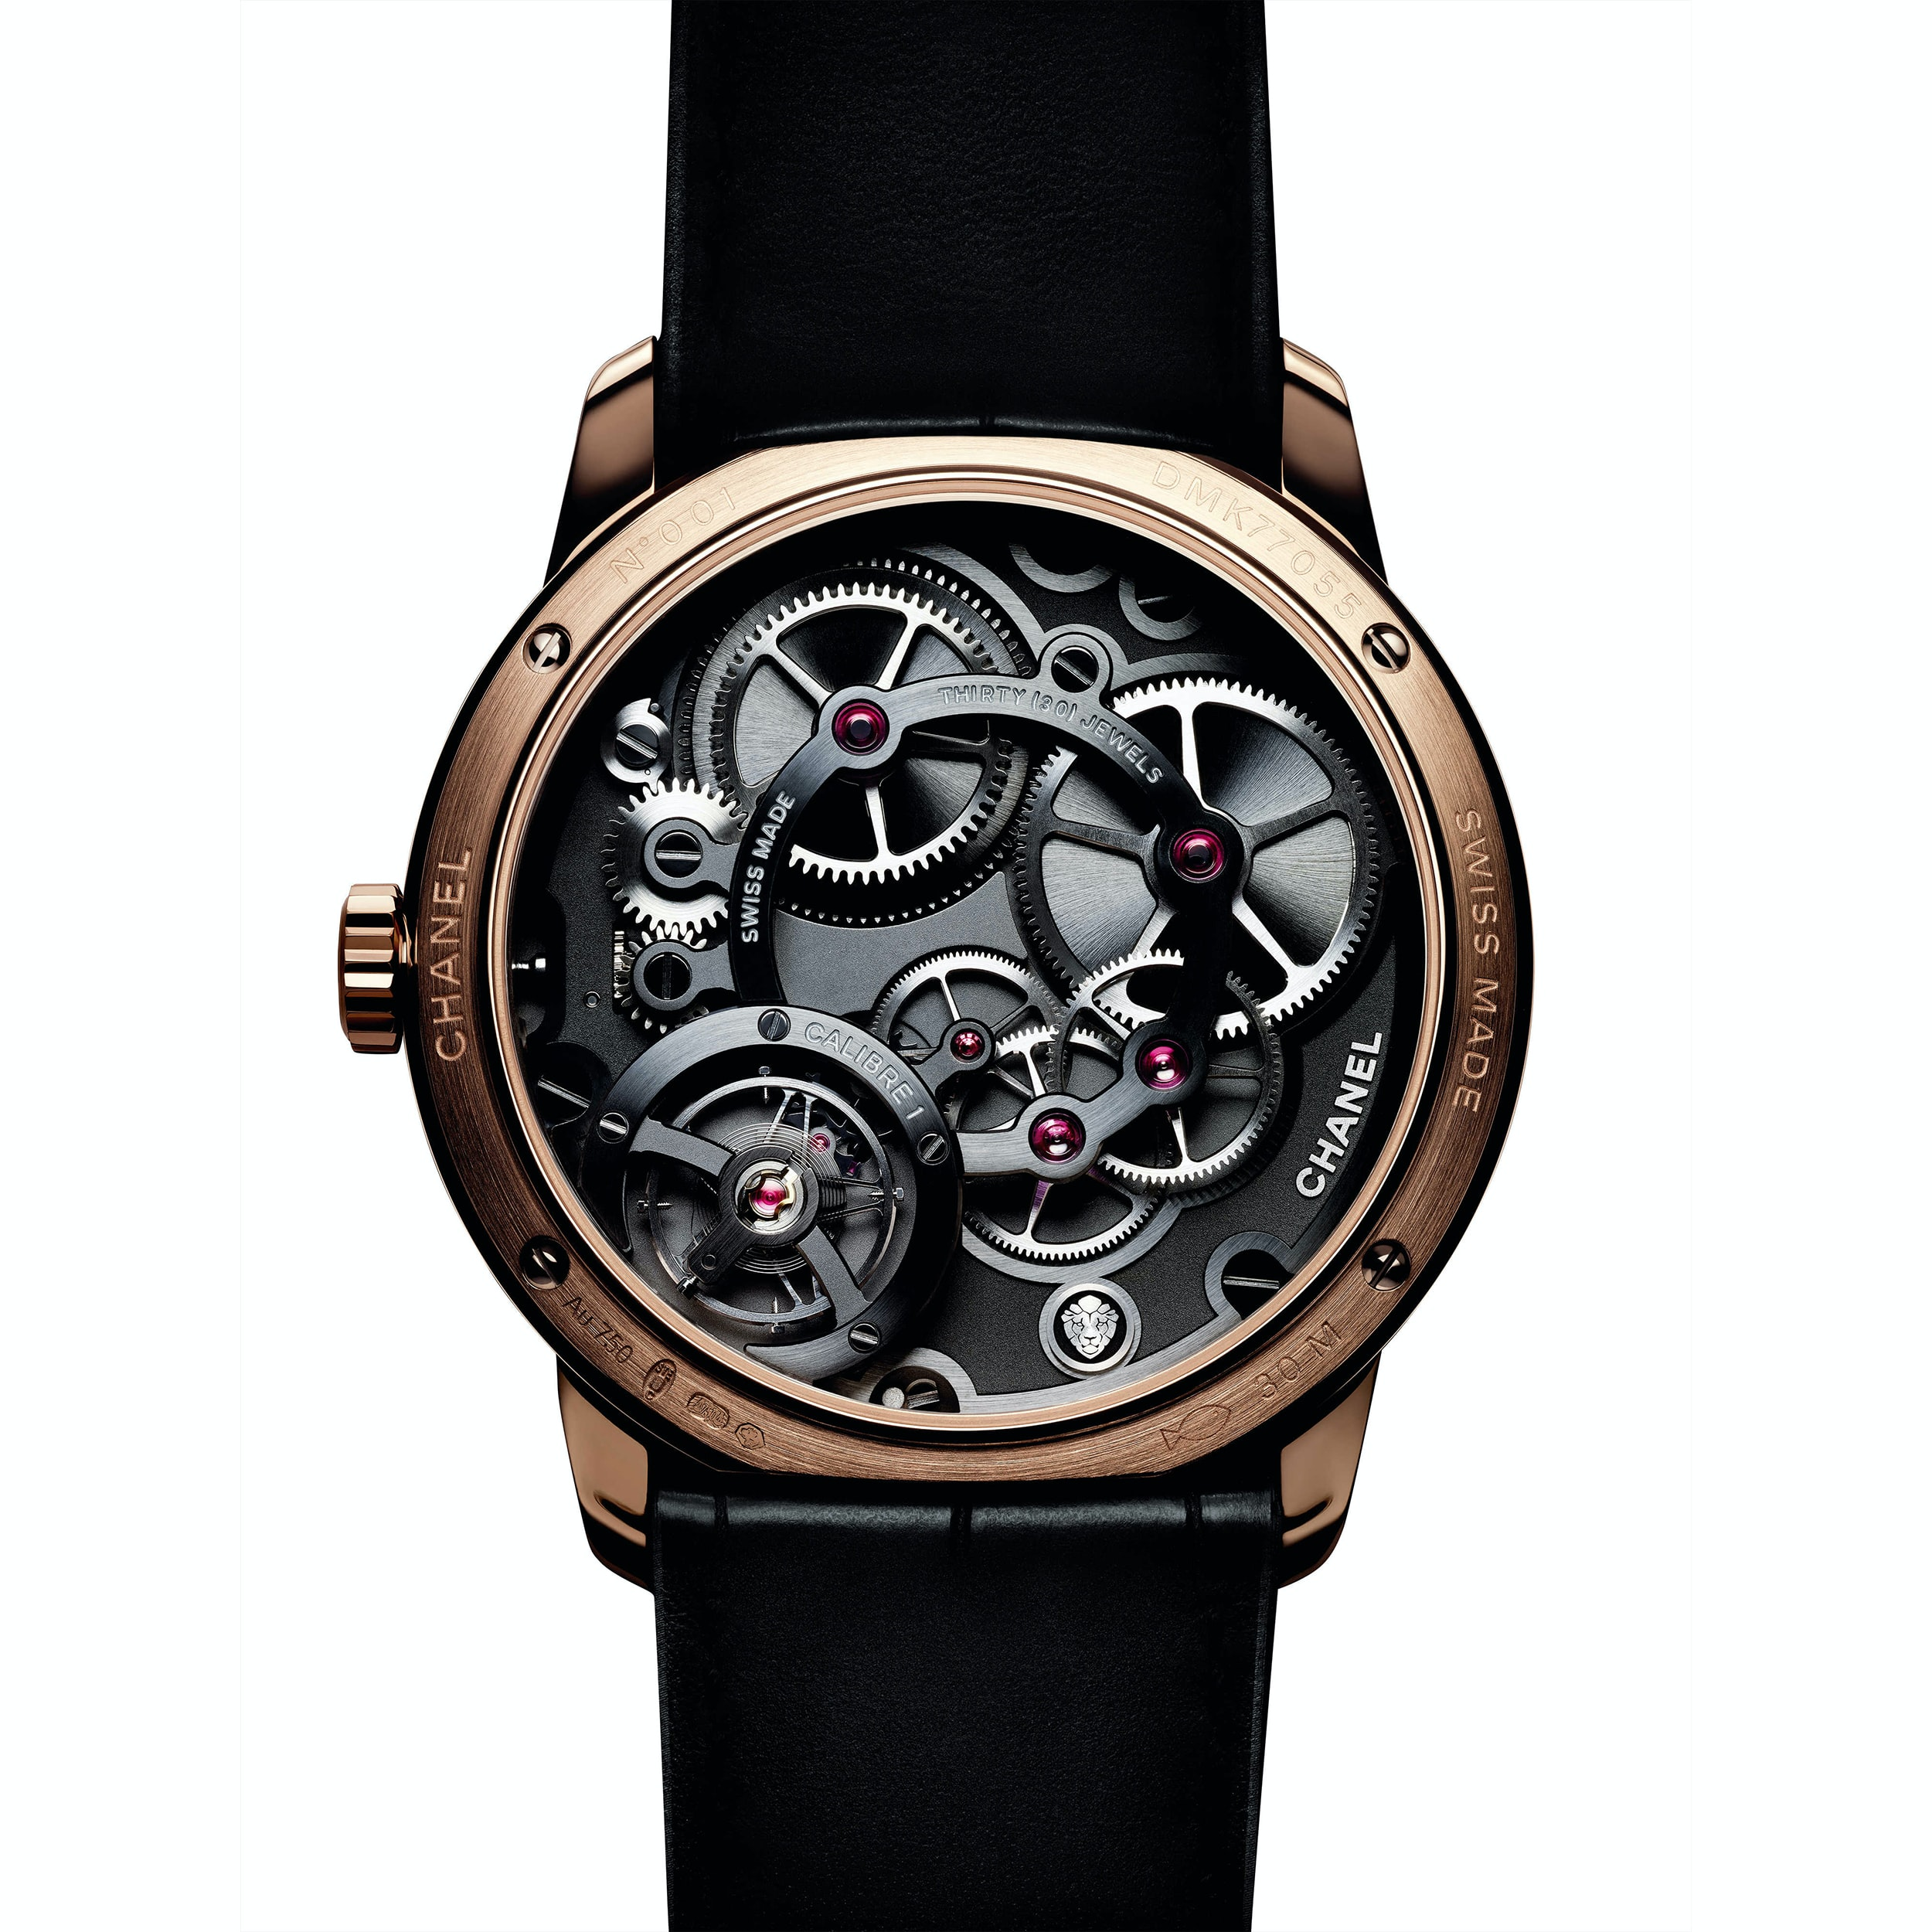 monsieur de chanel caliber 1 Introducing: The Monsieur de Chanel Limited Edition In Platinum With Black Enamel Dial Introducing: The Monsieur de Chanel Limited Edition In Platinum With Black Enamel Dial Chanel Inline 2